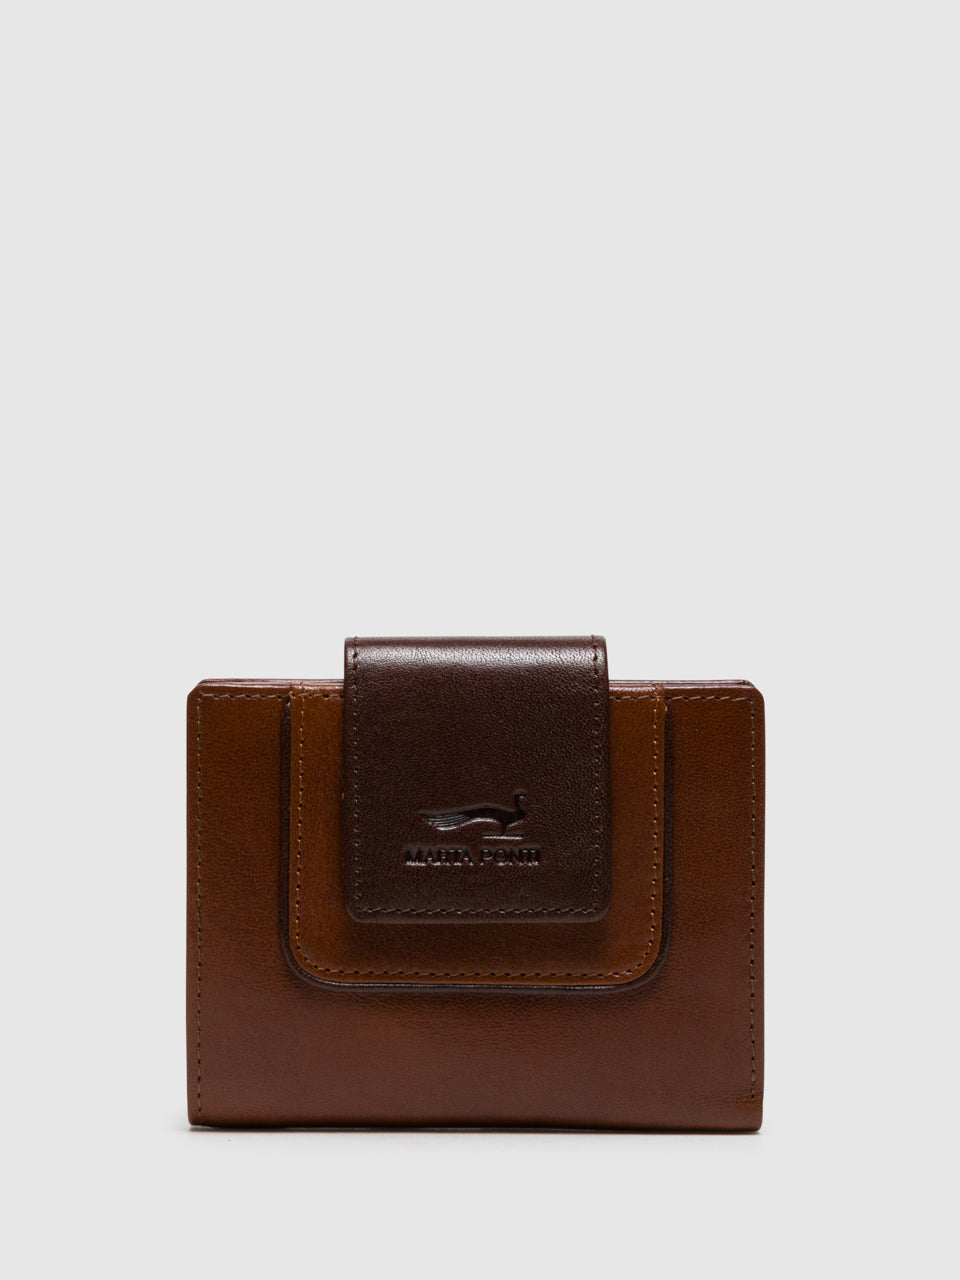 MARTA PONTI Chocolate Brown Wallet